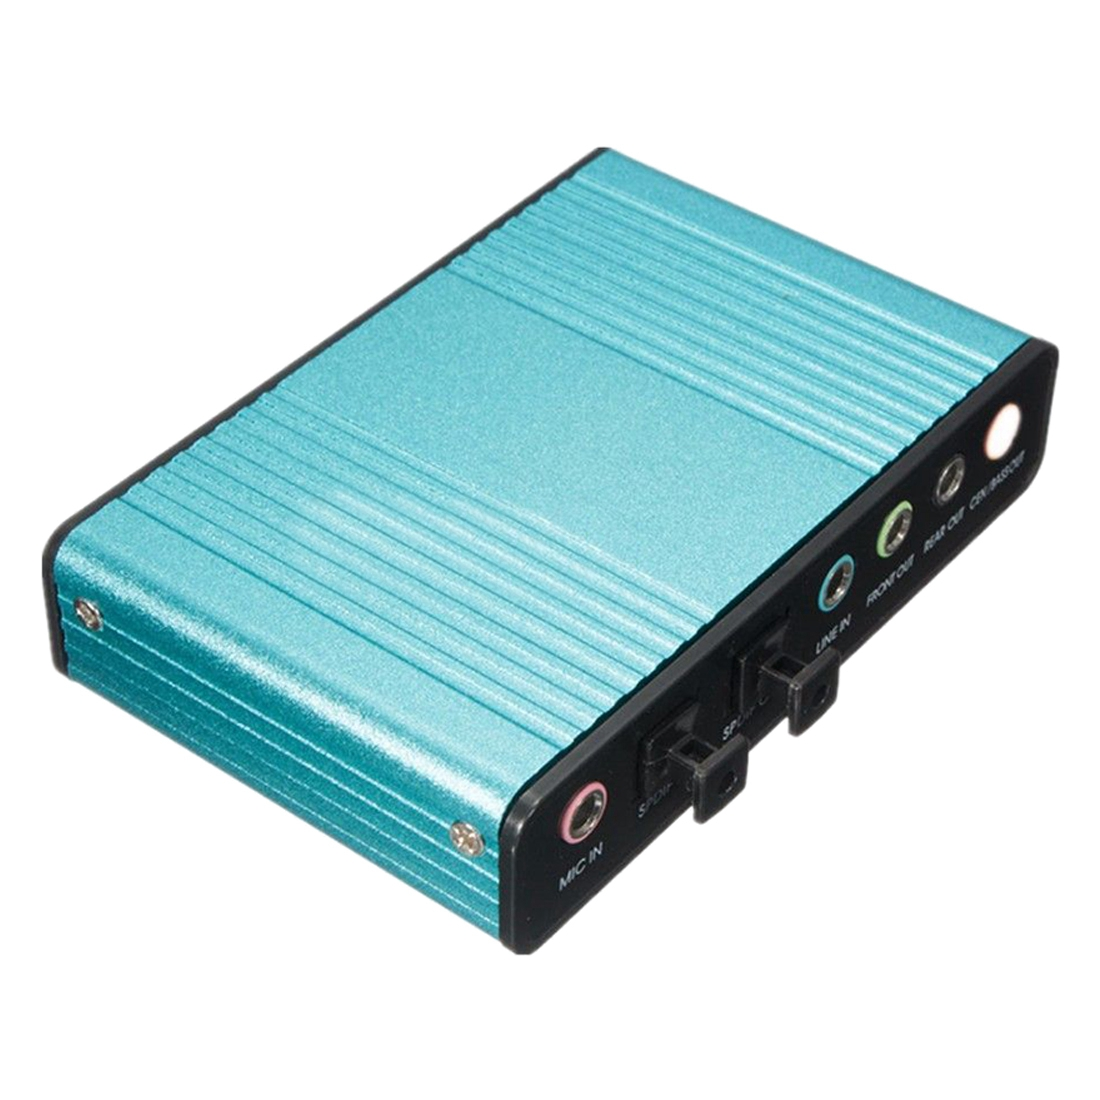 External Sound Card USB 6 Channel 5.1 Audio S / PDIF Optical Sound Card For PC Light blue